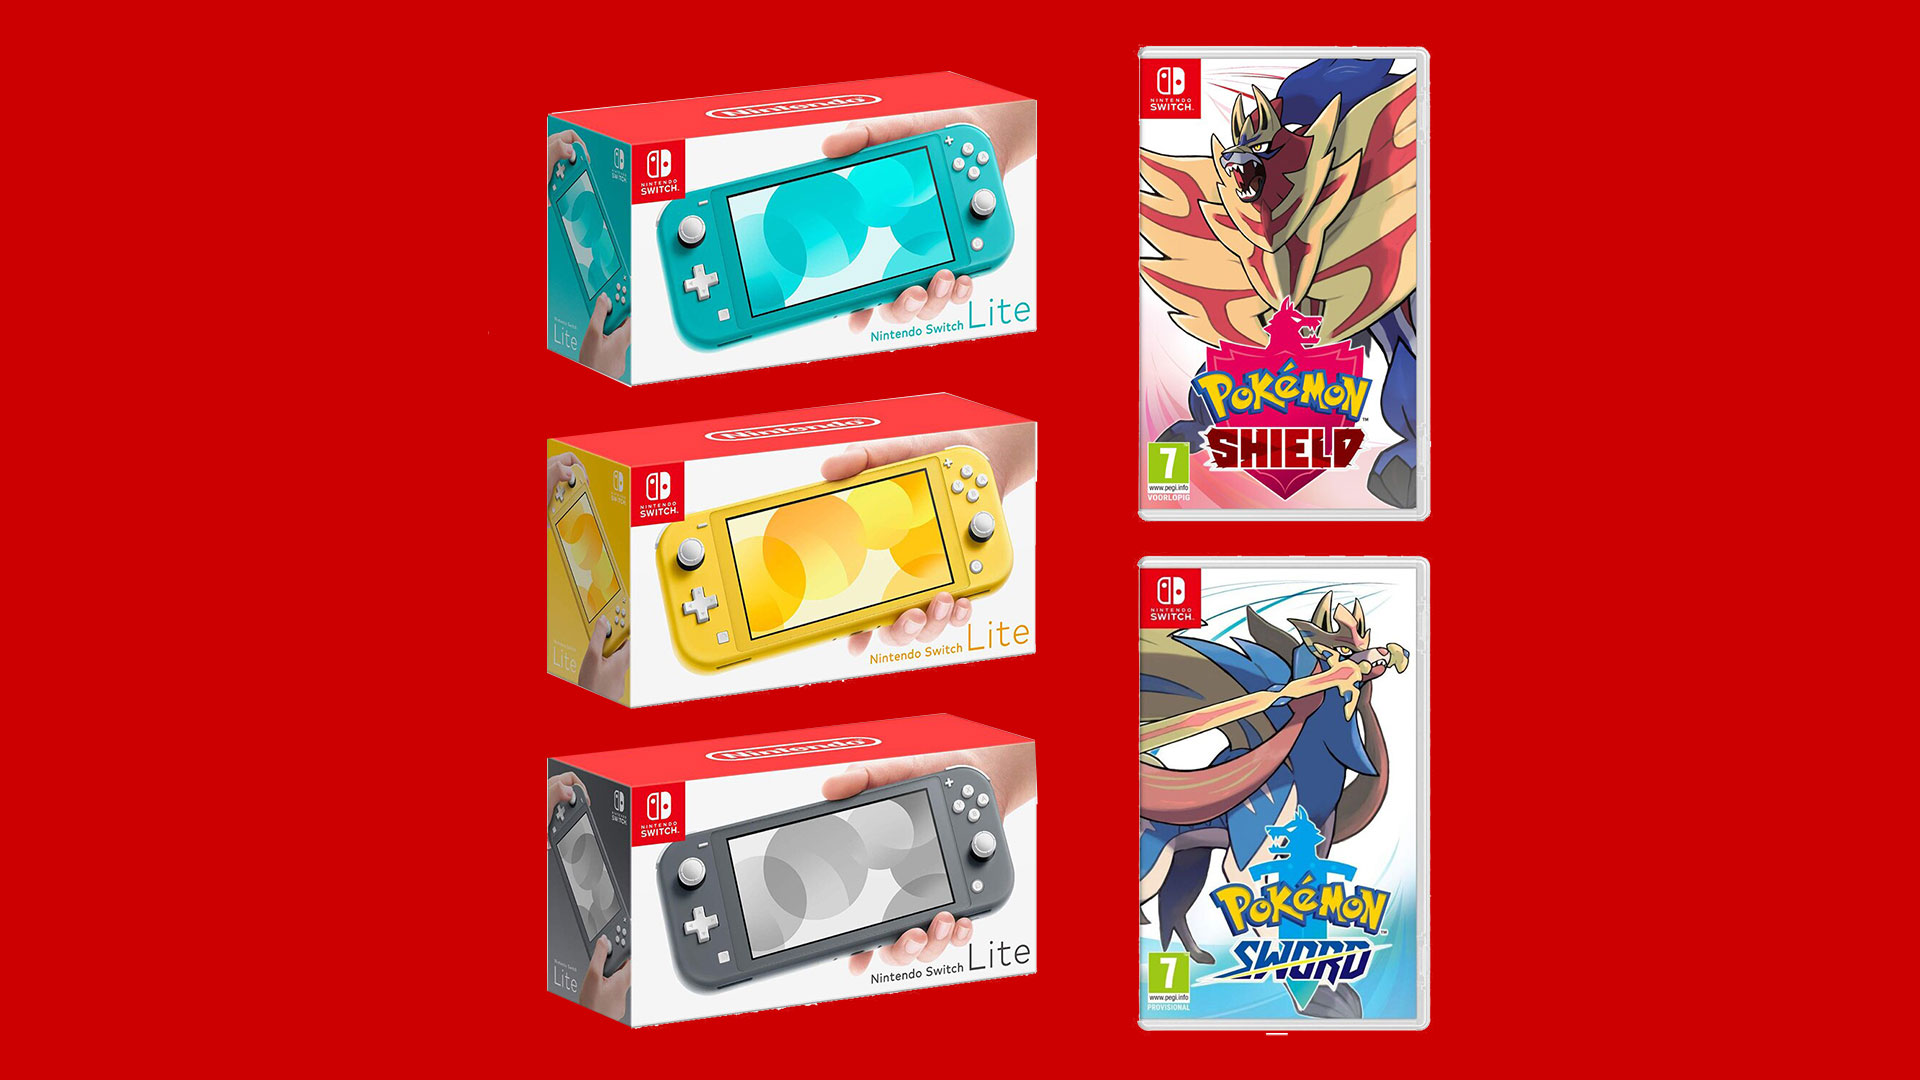 Black Friday $43 Pokemon Shield and Sword, $169 Switch Lite all ends tonight screenshot